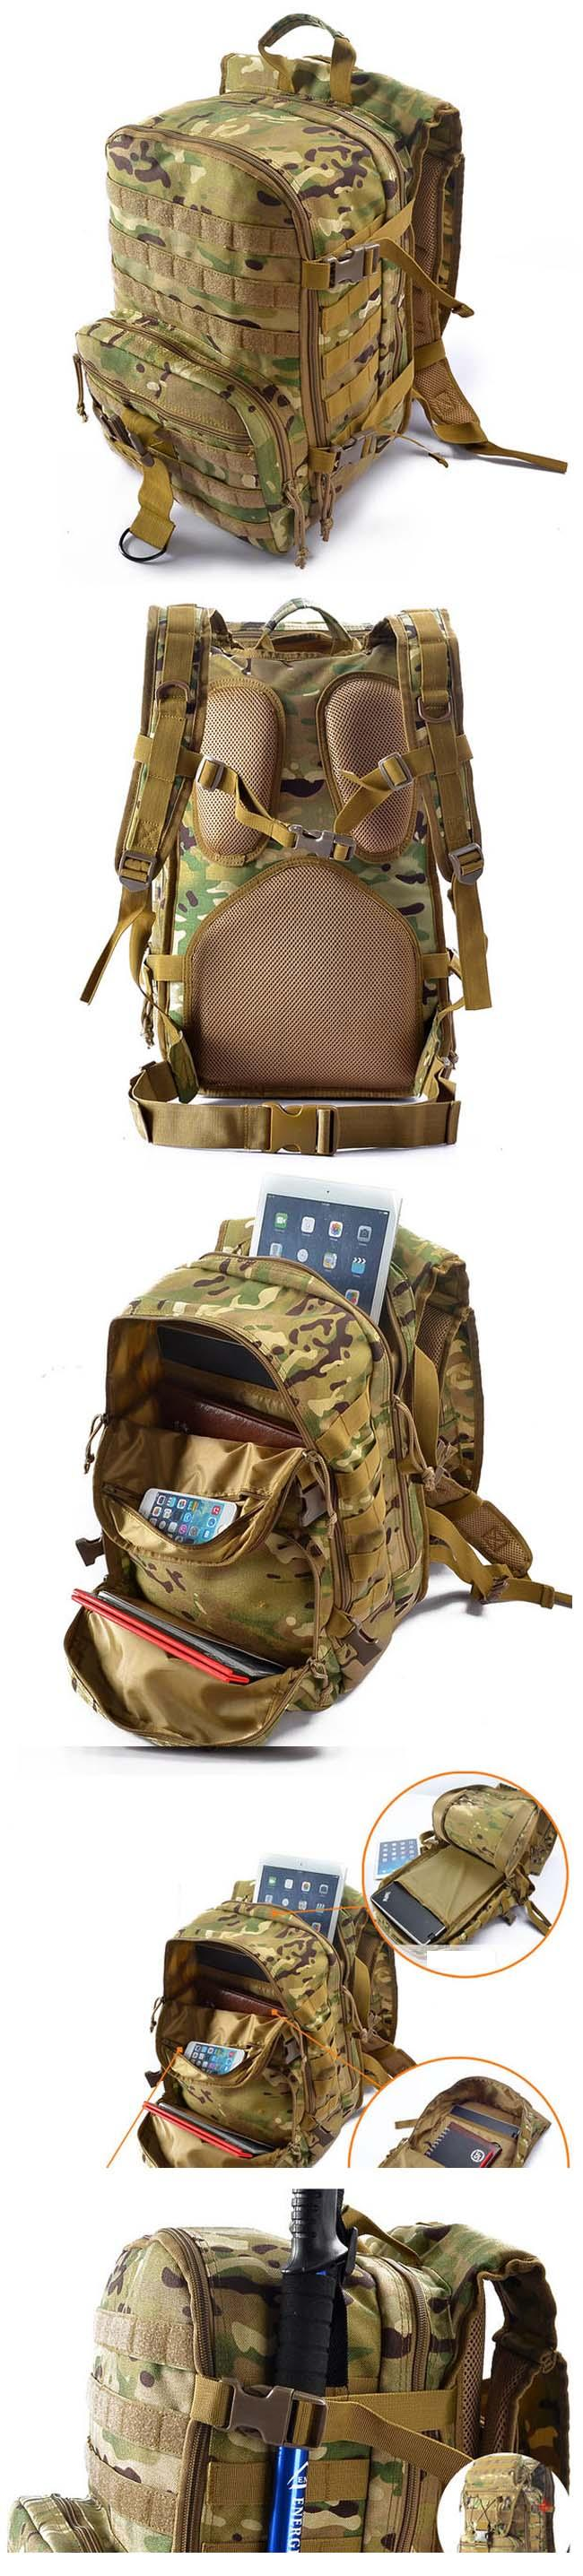 Folding Woman Small Army Backpack Camouflage Lightweight With Shoulders